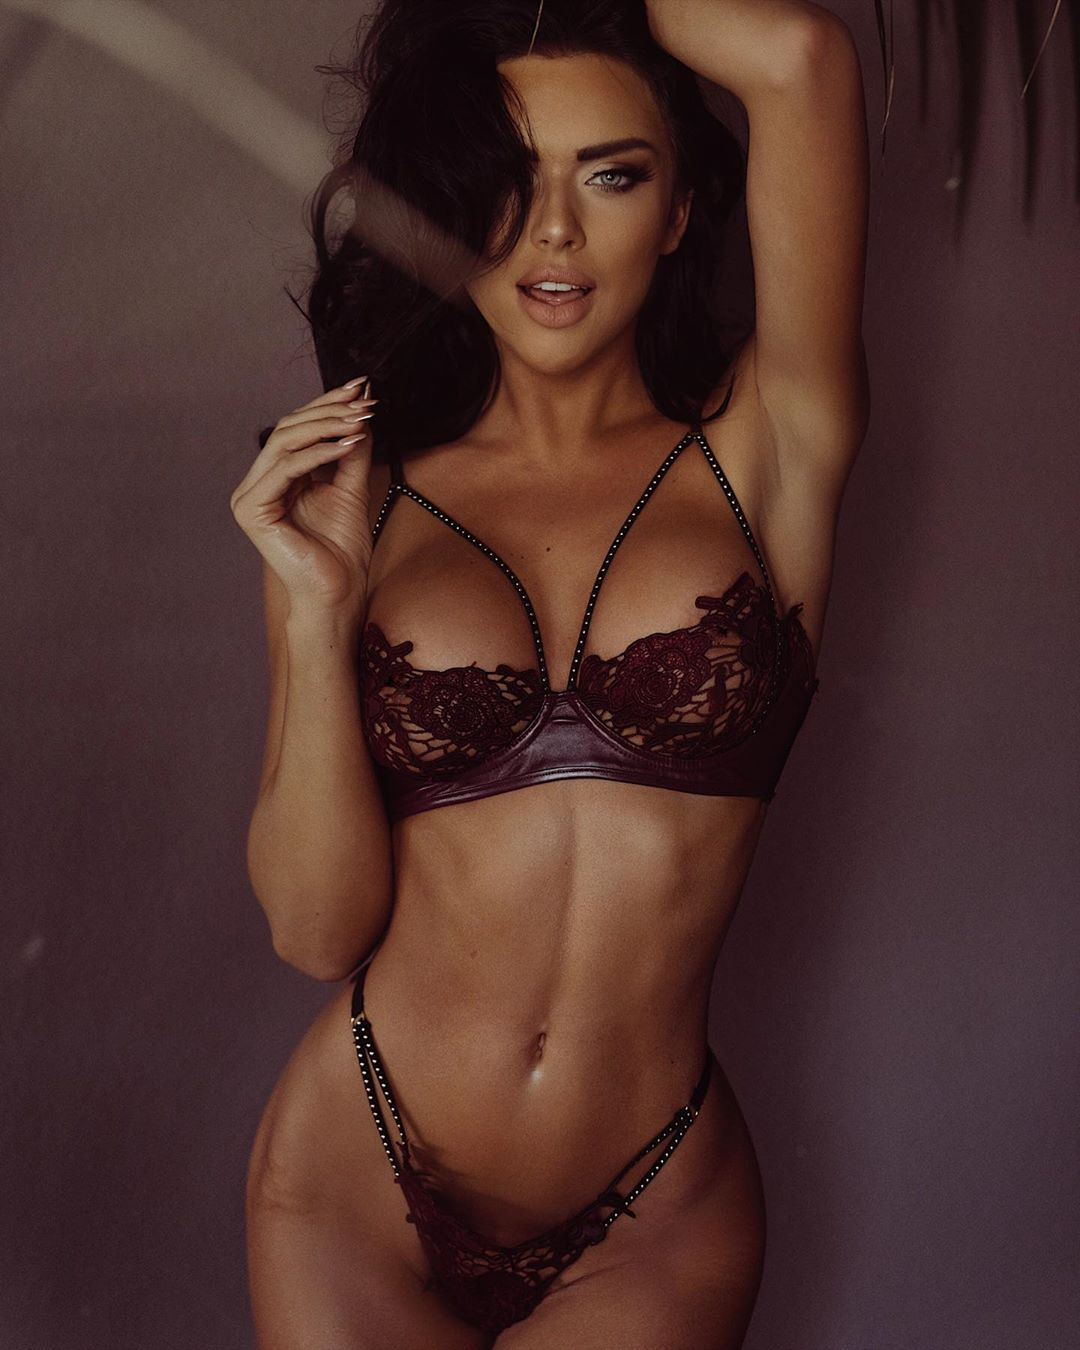 Kelsie Jean Smeby Hot Lingerie Photos - Kelsie Jean Smeby Hot Lingerie Photos